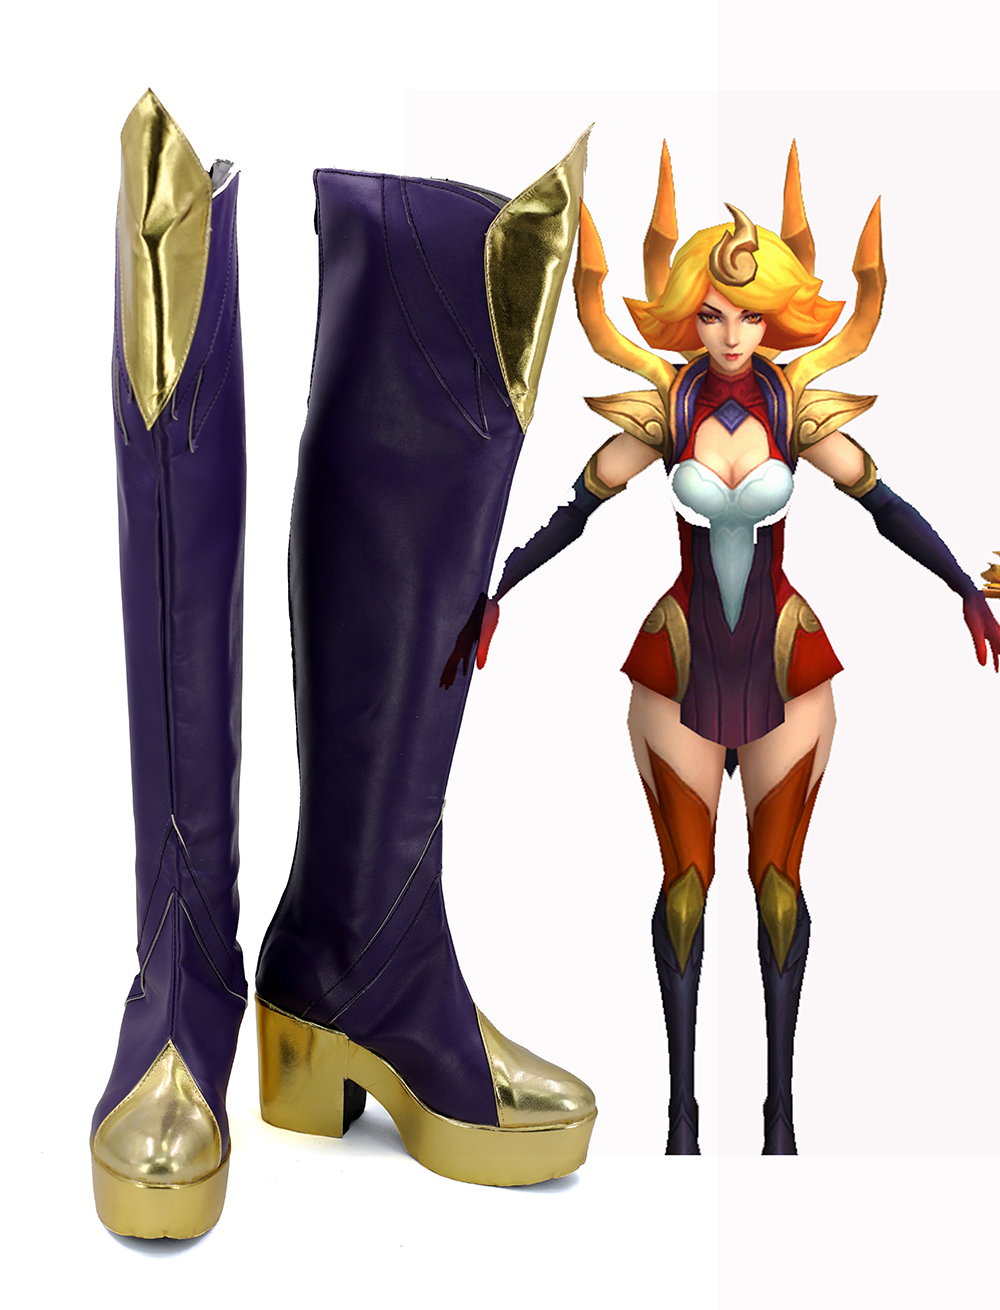 LOL Lux Fire Original os Cosplay bottes chaussures sur mesure toute taille